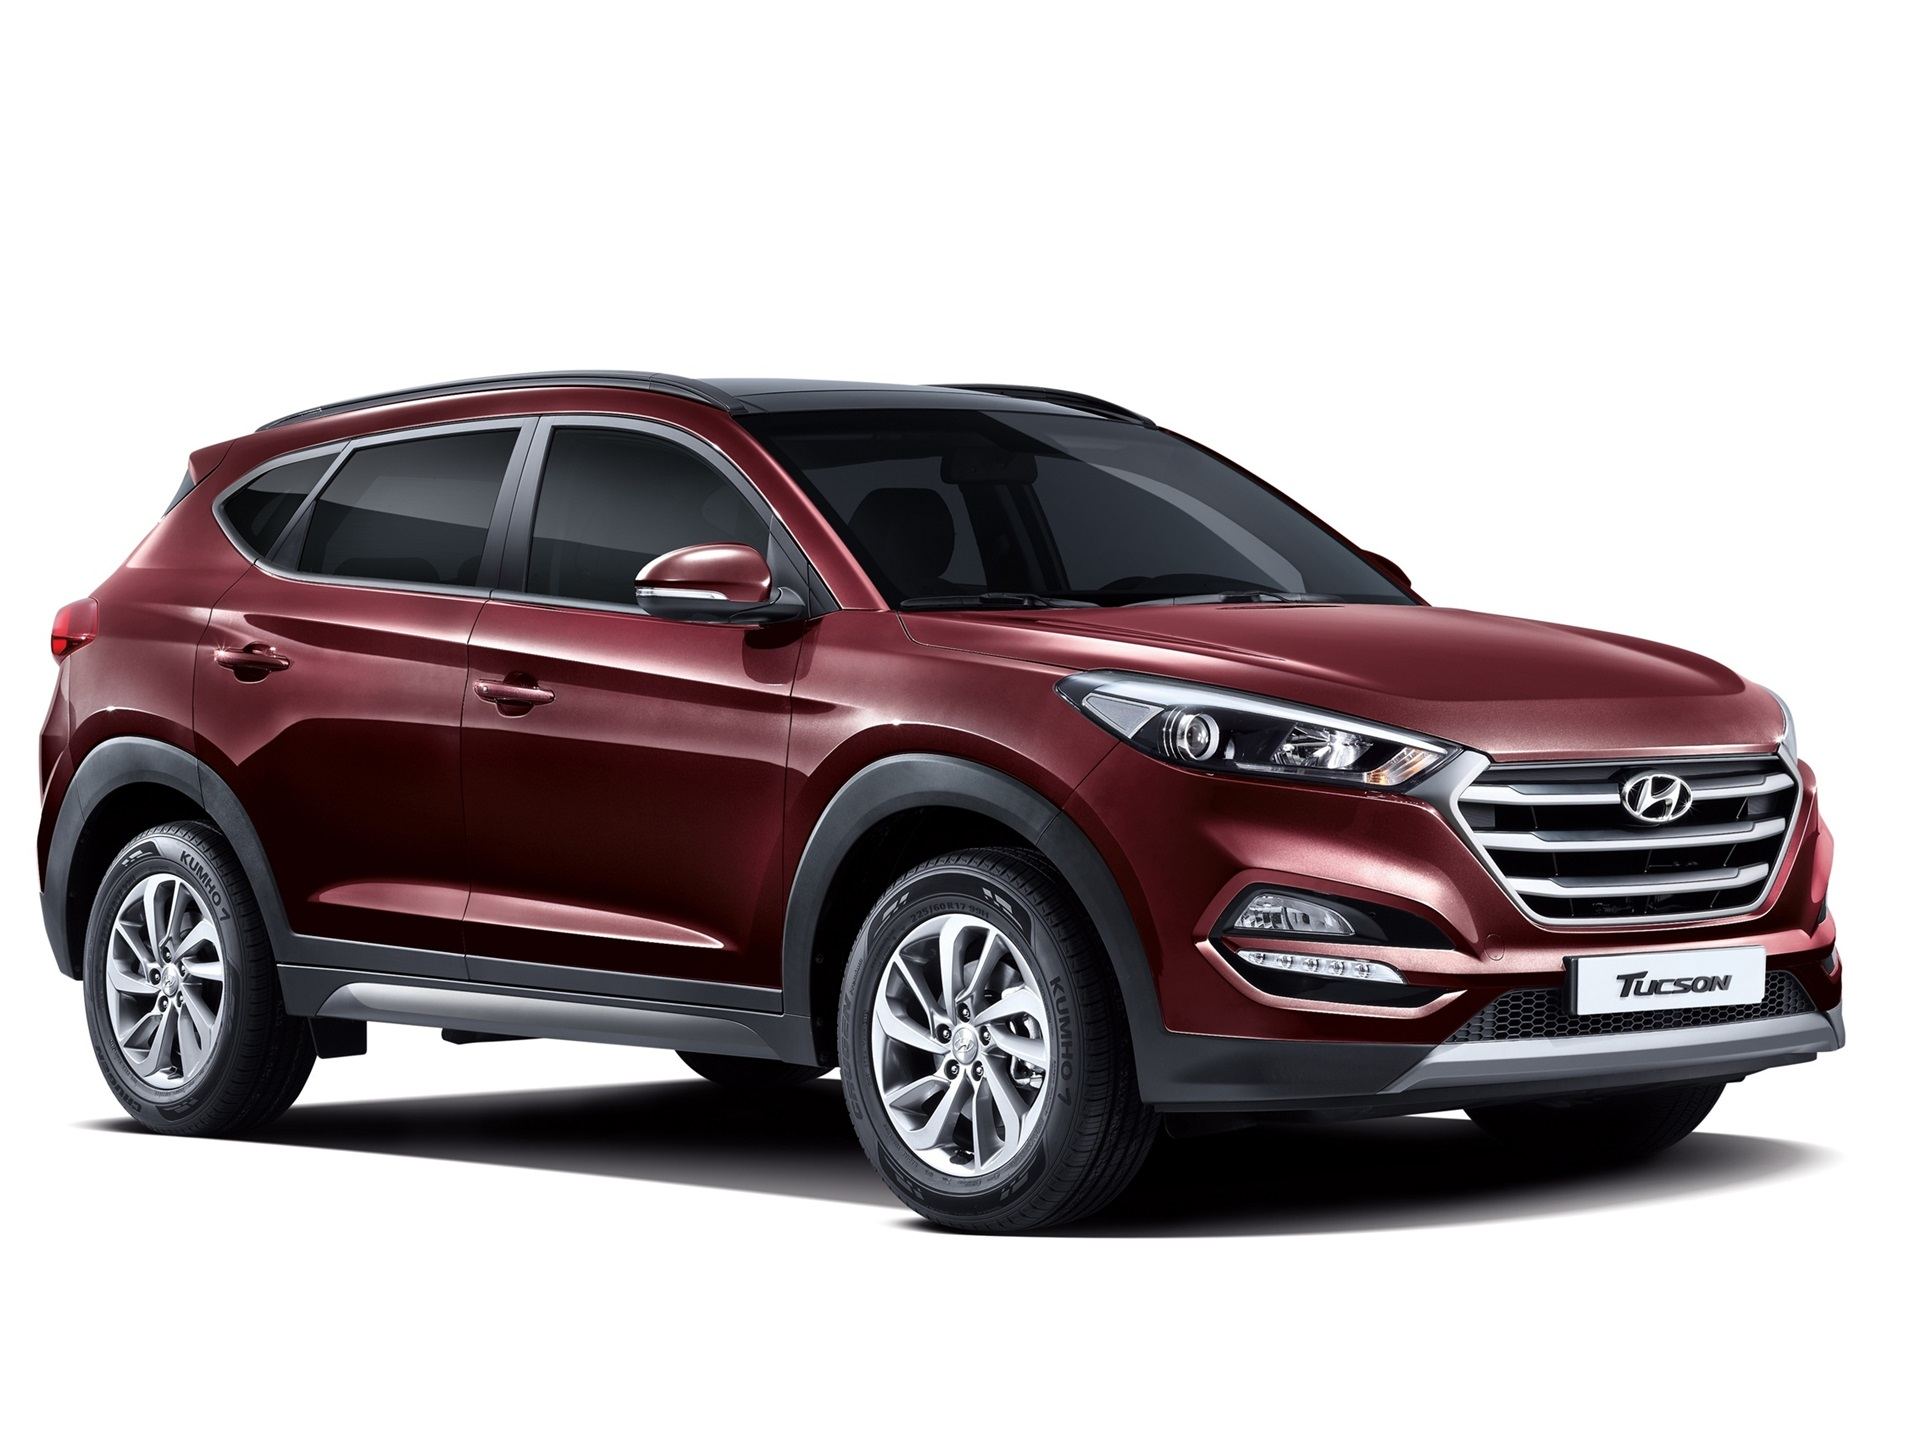 wallpaper 2015 hyundai tucson kr spec red suv car 2560x1600 hd picture image. Black Bedroom Furniture Sets. Home Design Ideas